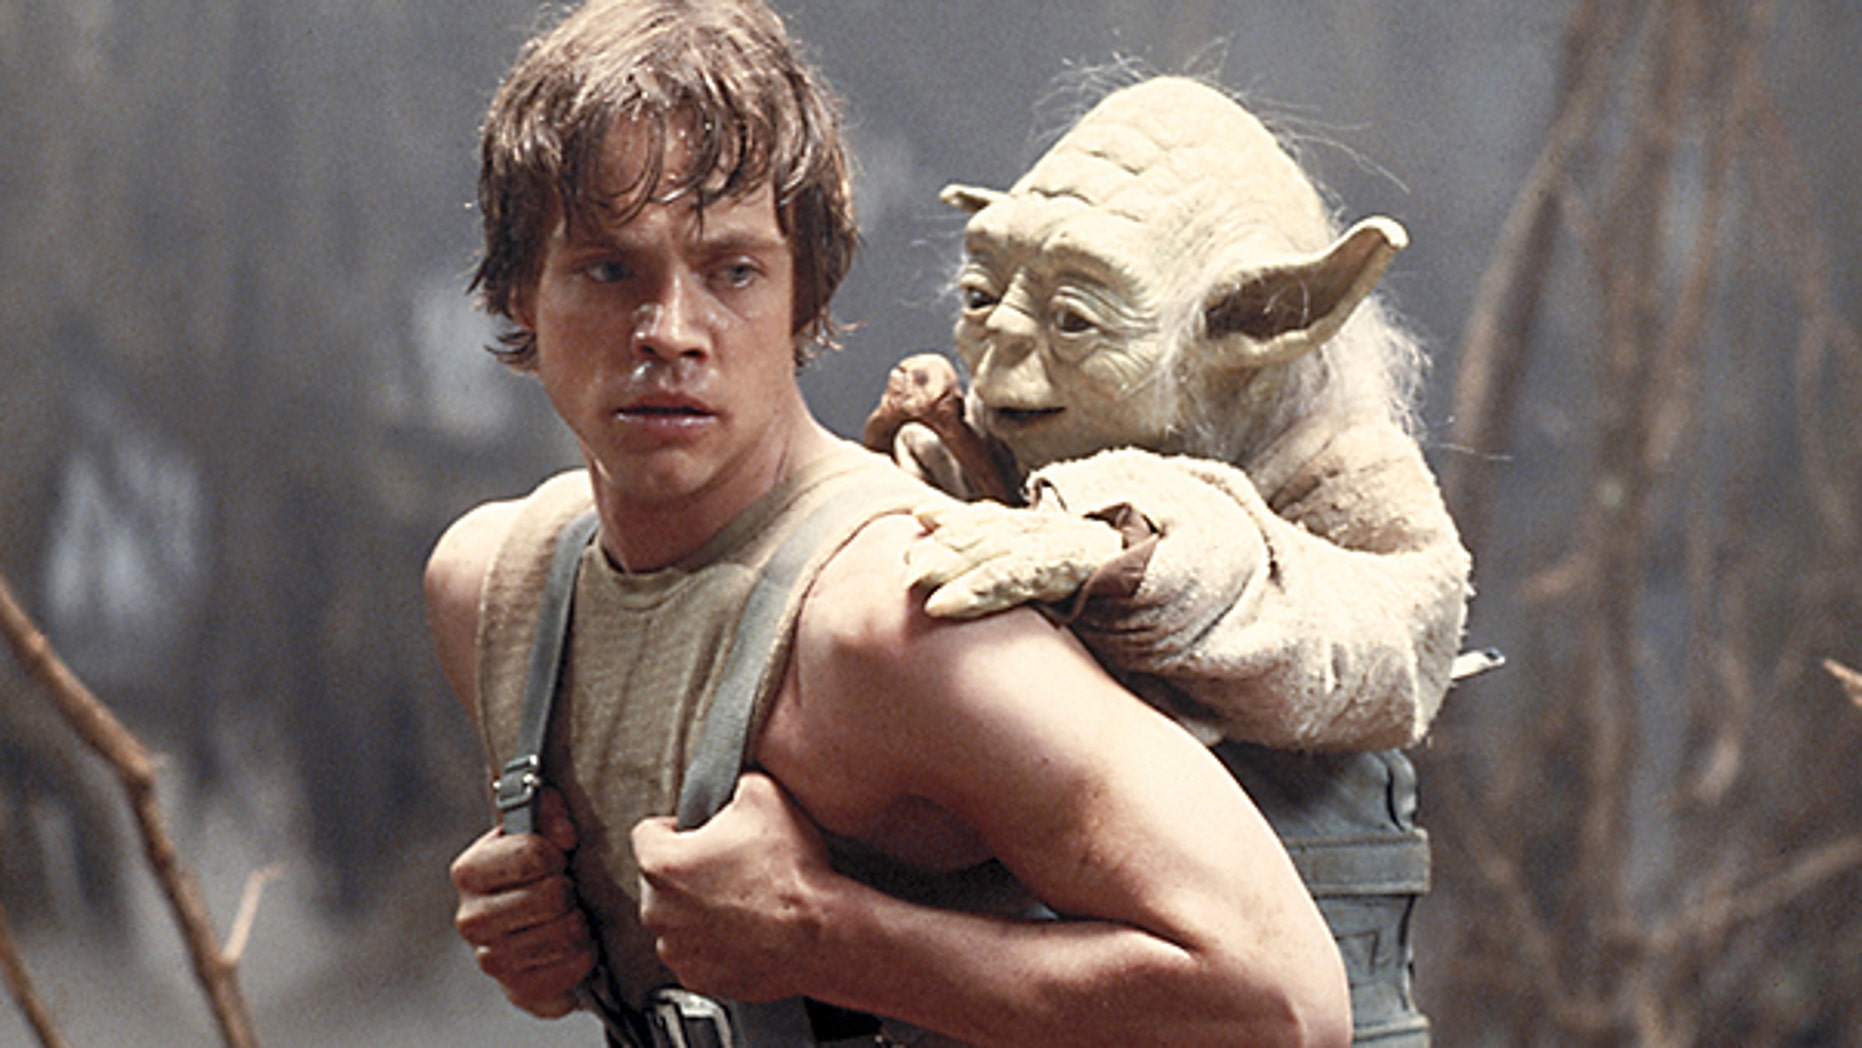 This 1980 publicity image originally released by Lucasfilm Ltd. shows Mark Hamill as Luke Skywalker and the character Yoda in a scene from 'Star Wars Episode V: The Empire Strikes Back.'